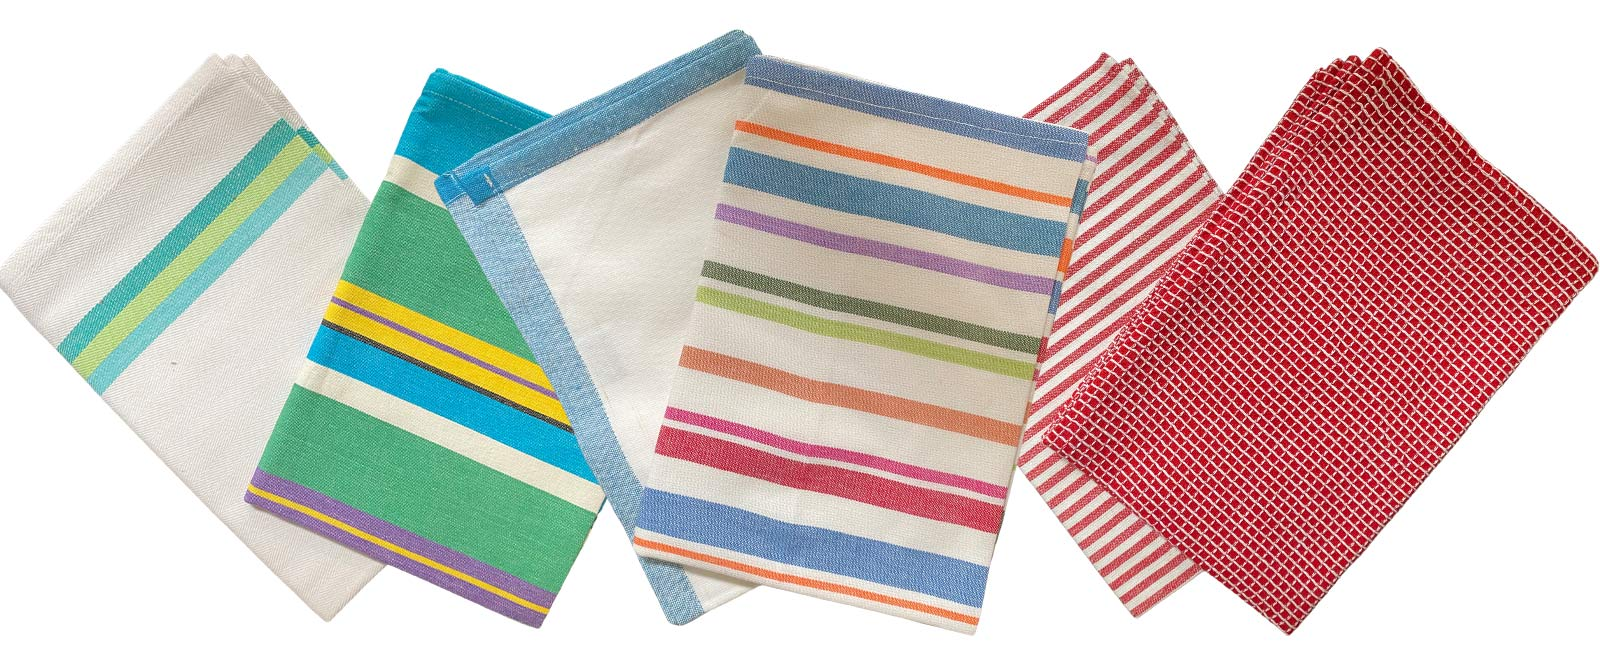 Striped Tea Towel Sets | Set of 3 Teatowels